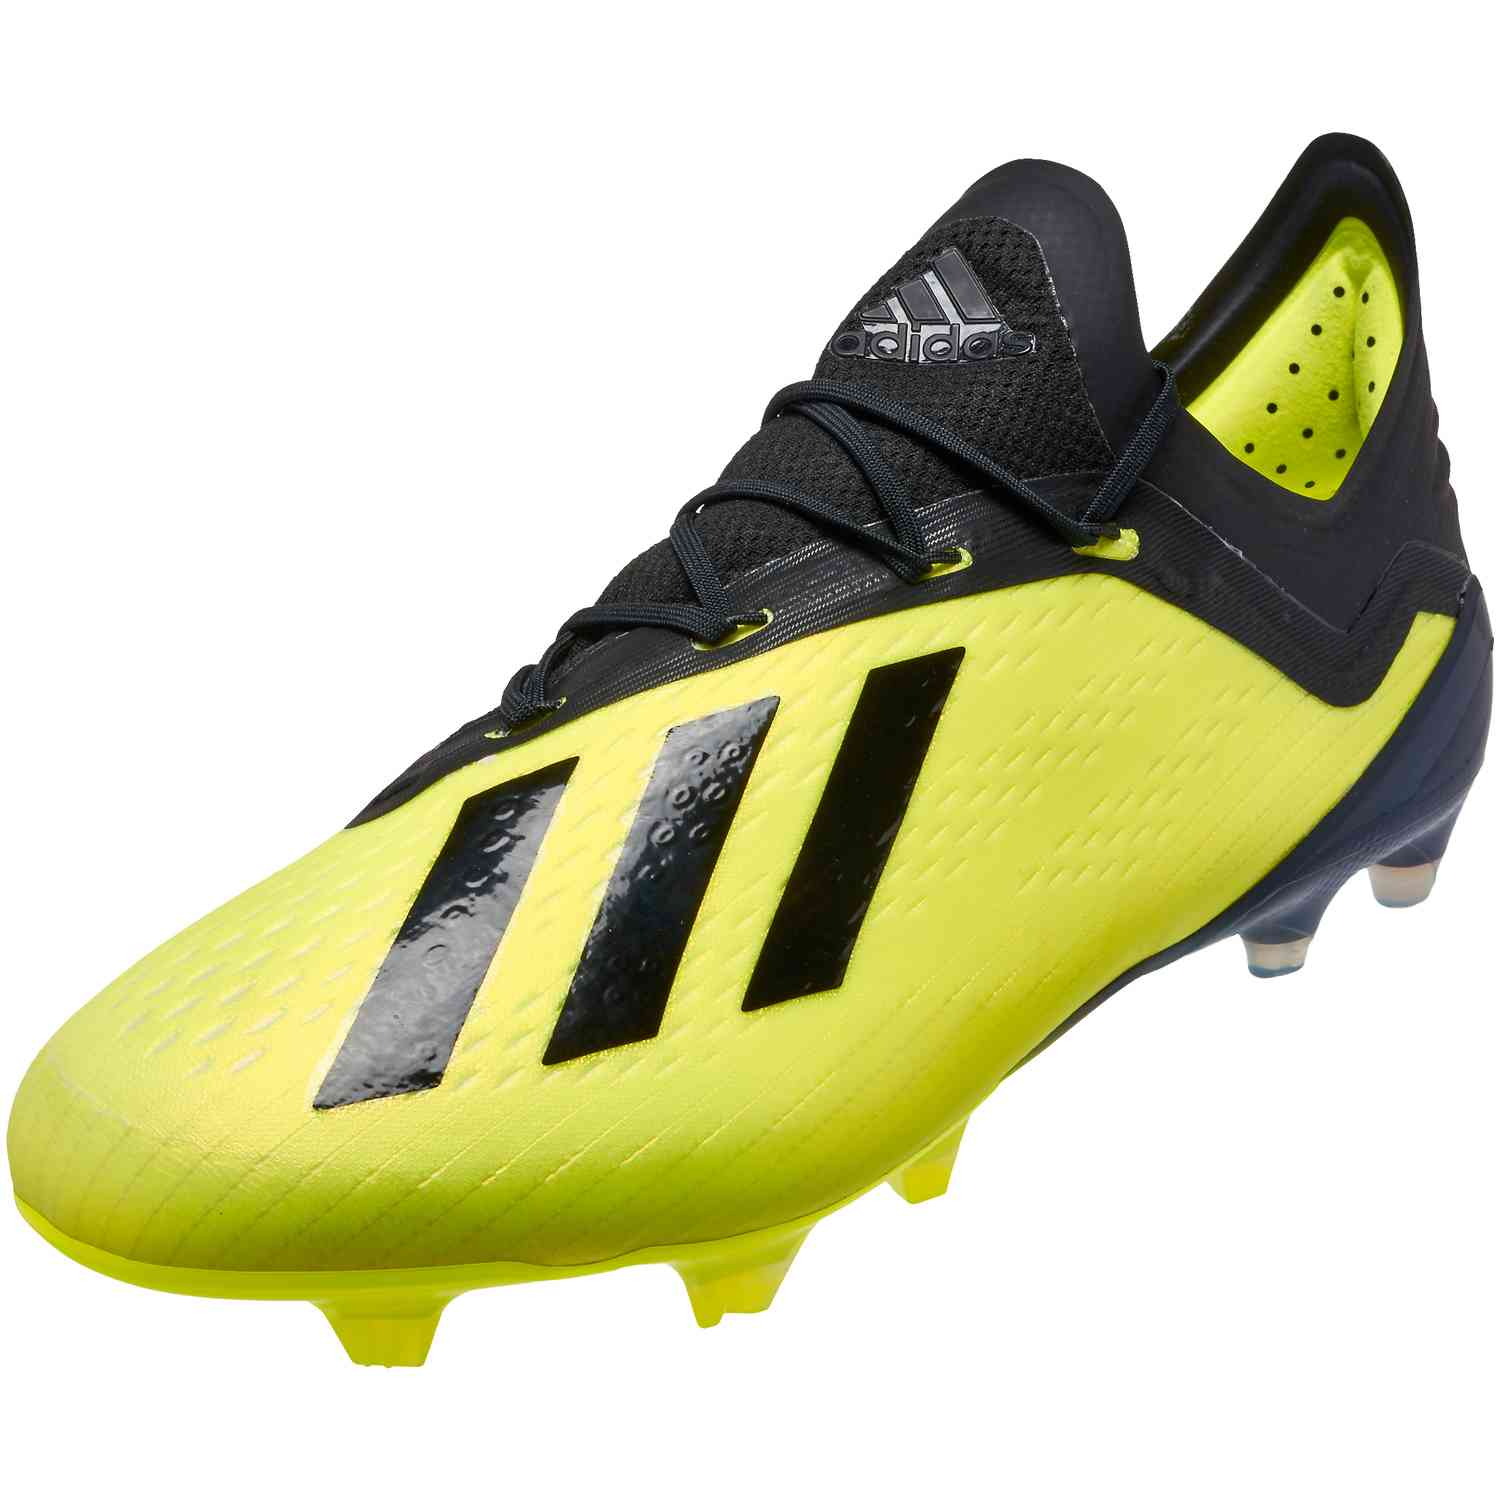 f5f9bed39cec adidas X 18.1 FG Soccer Cleat- Solar Yellow/Black/White | Soccer ...